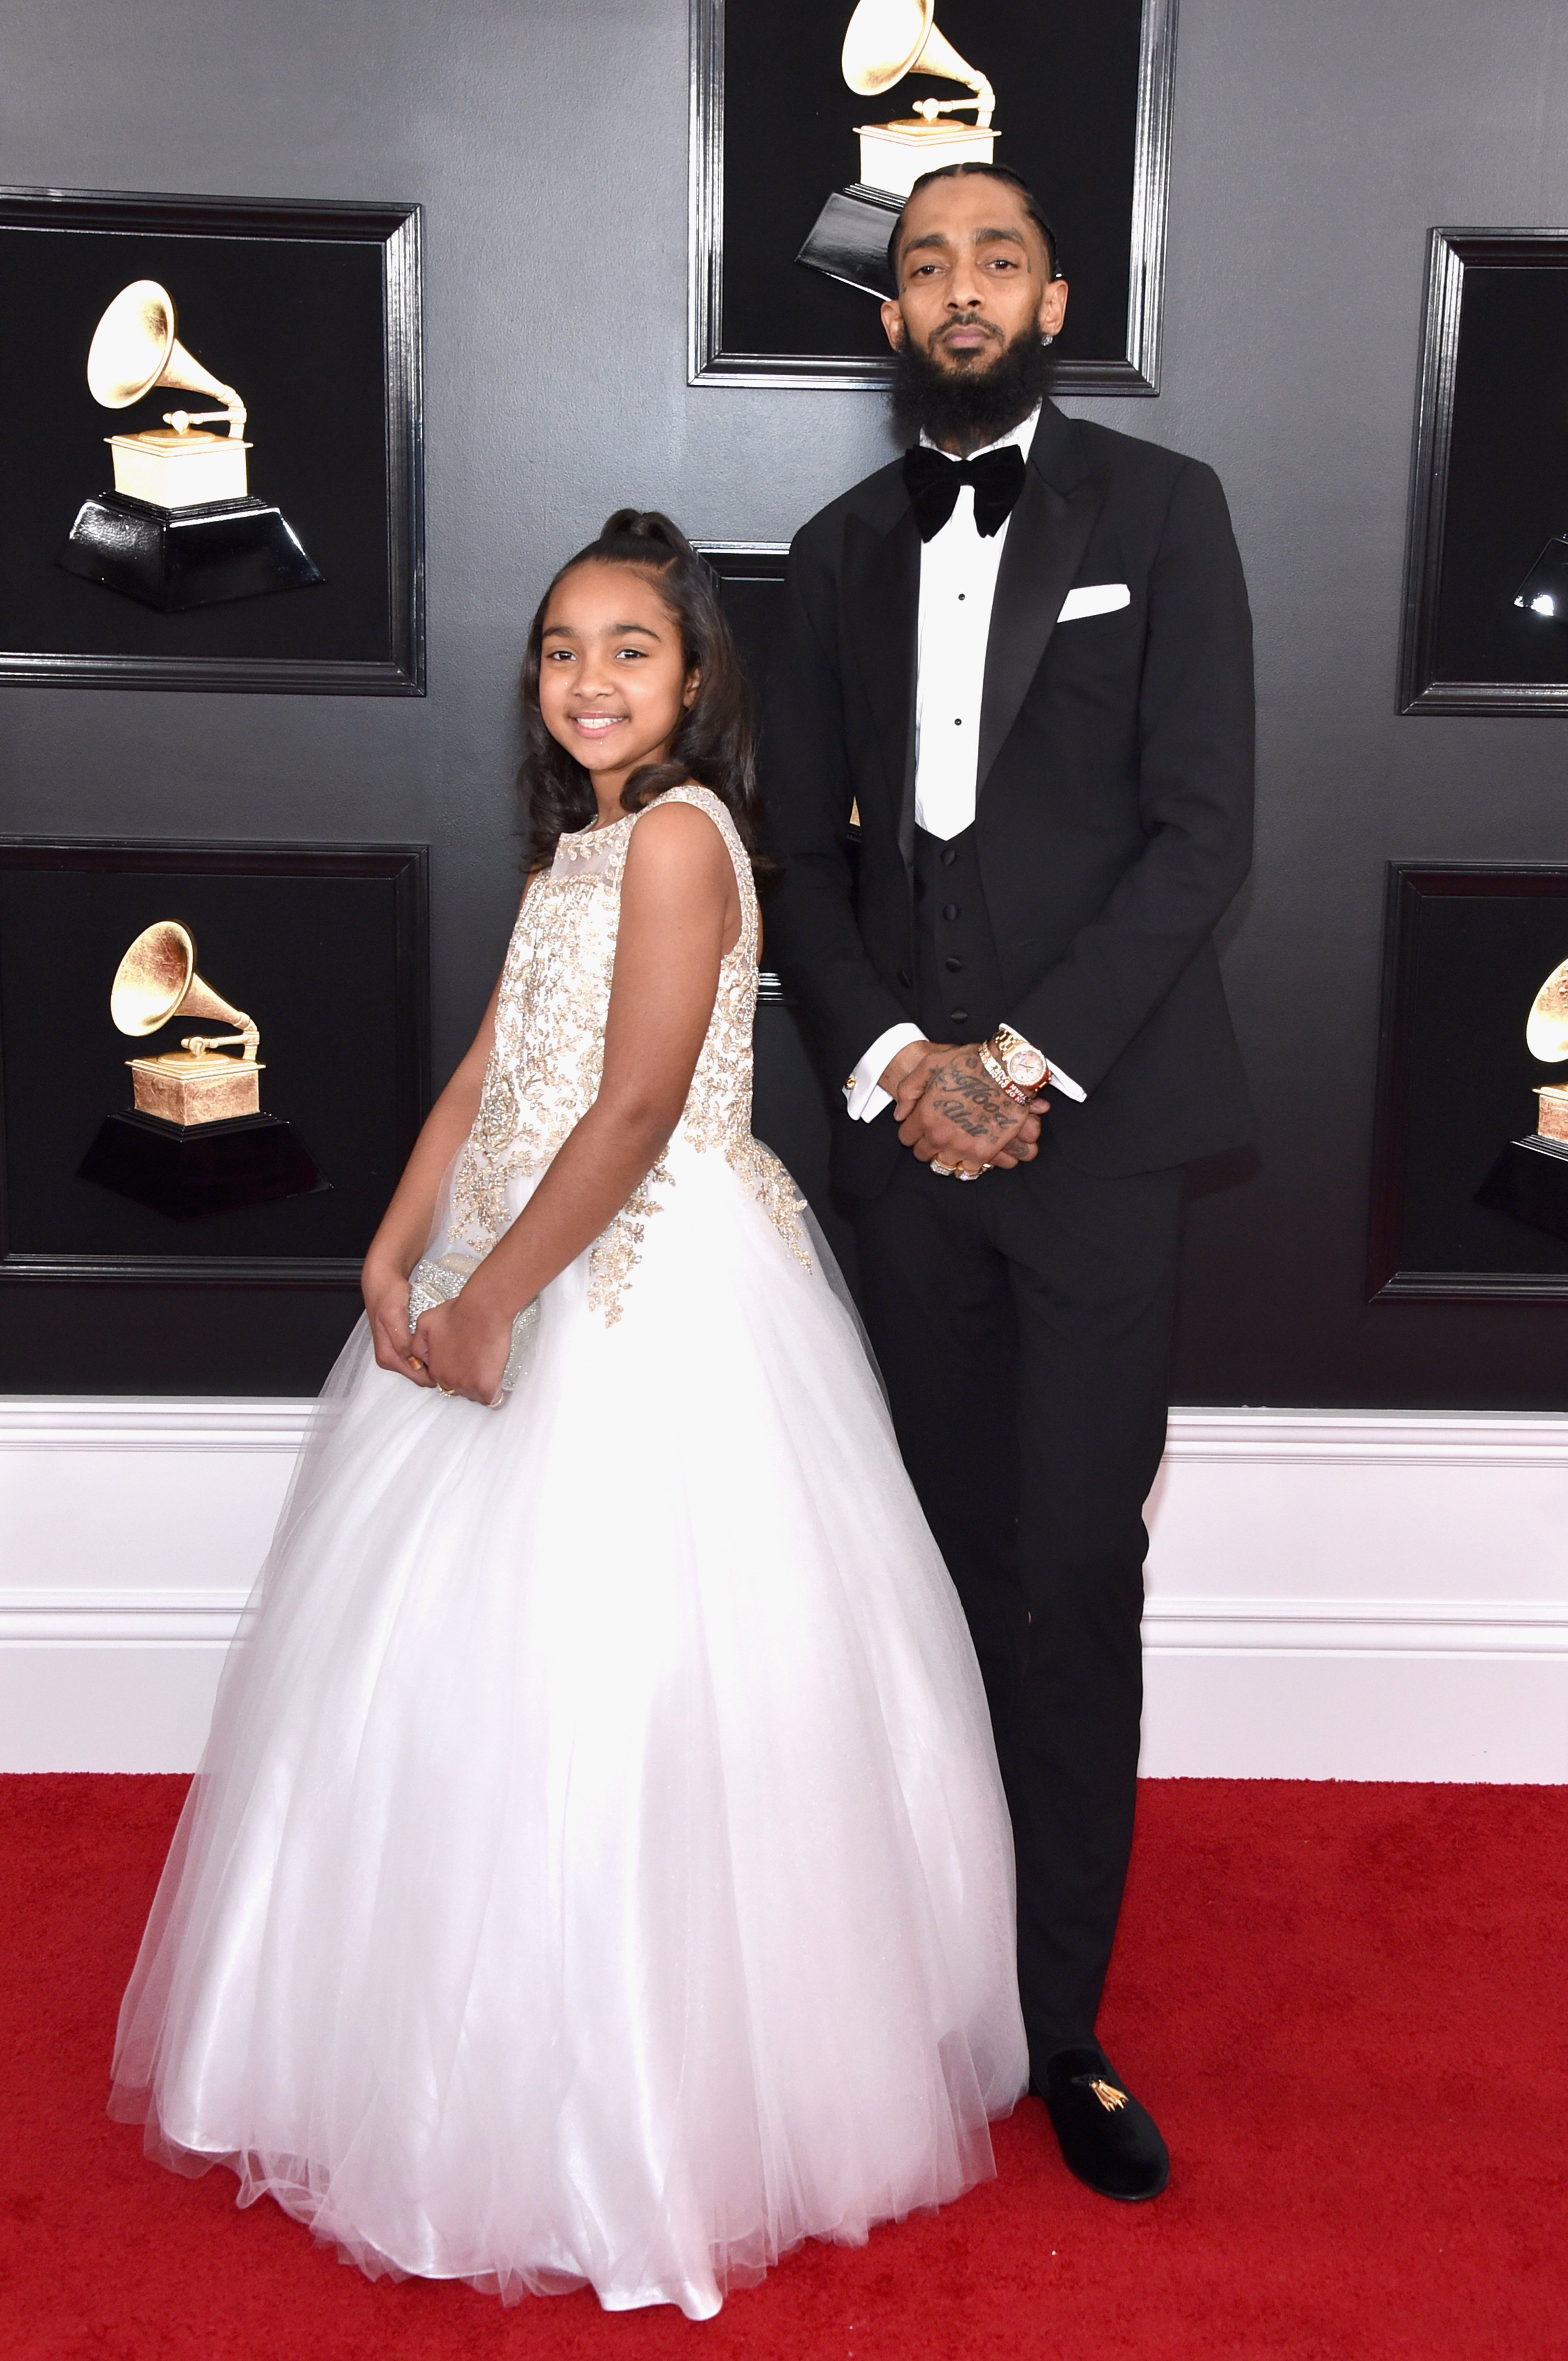 Nipsey Hussle and her daughter, Emani Asghedom attending the 61st Annual GRAMMY Awards at the Staples Center in Los Angeles on February 10, 2019. | Source: Getty